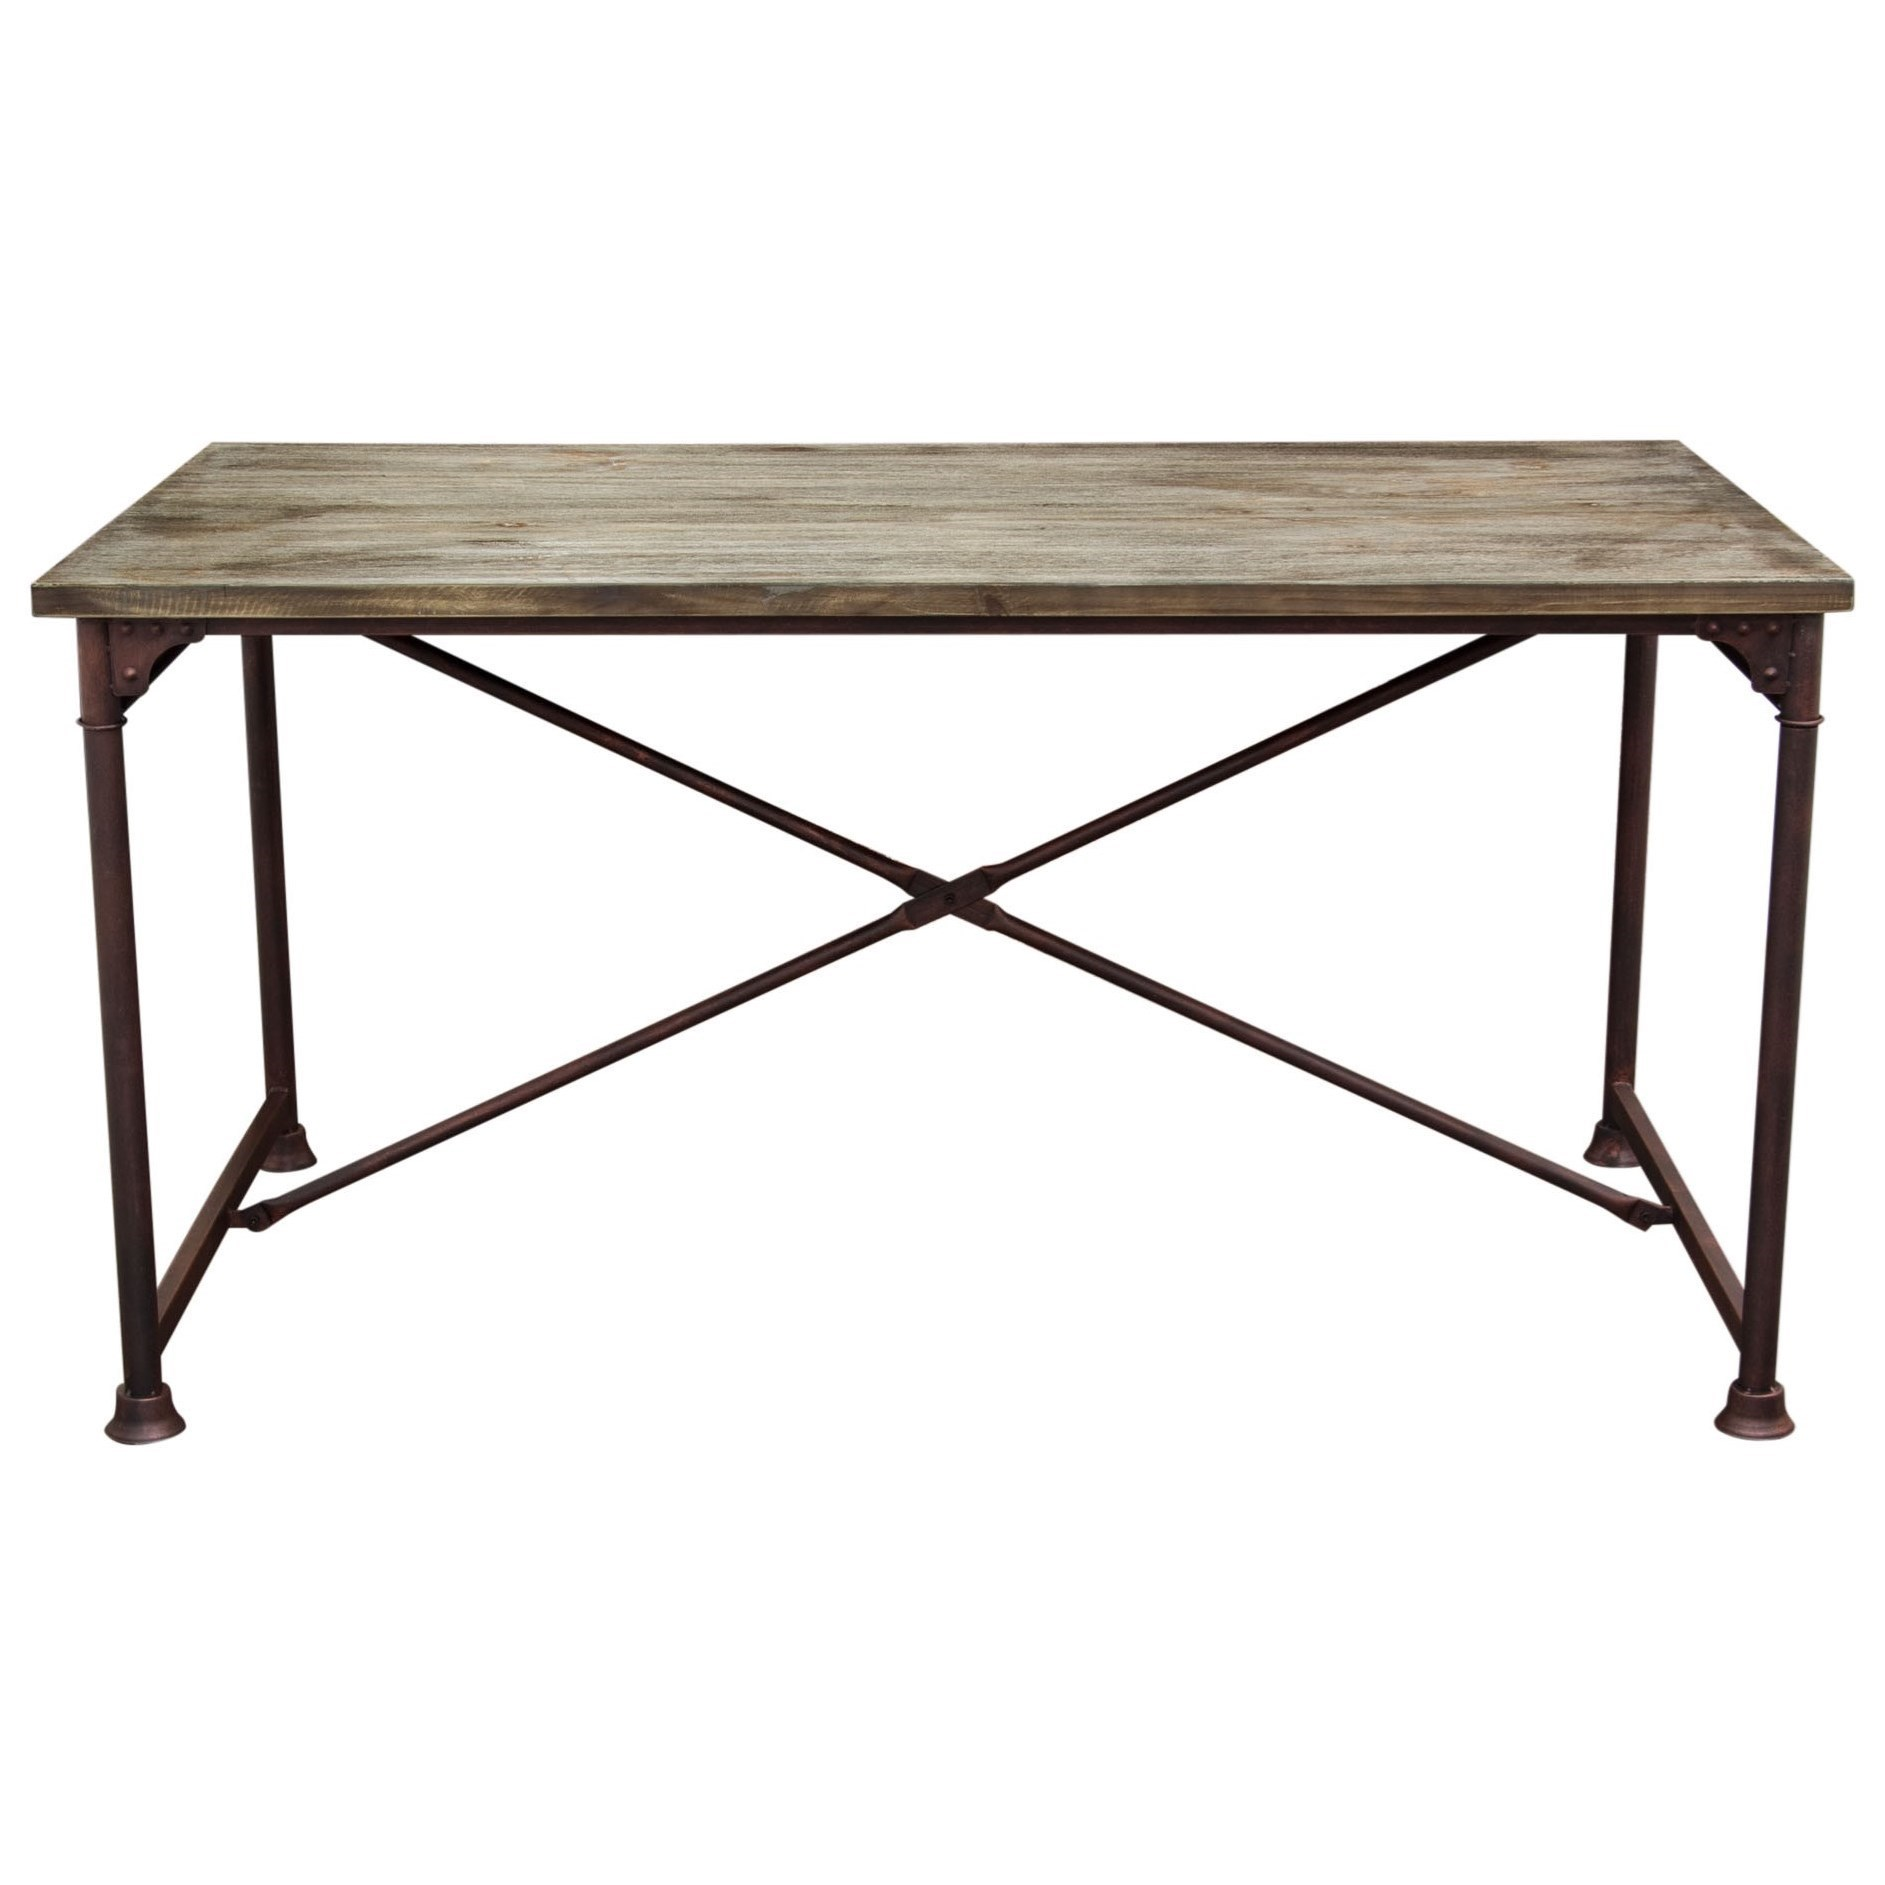 diamond sofa dixon dining table red knot dining tables rh redknothawaii com Jofran Dining Table Ashley Furniture Dining Table